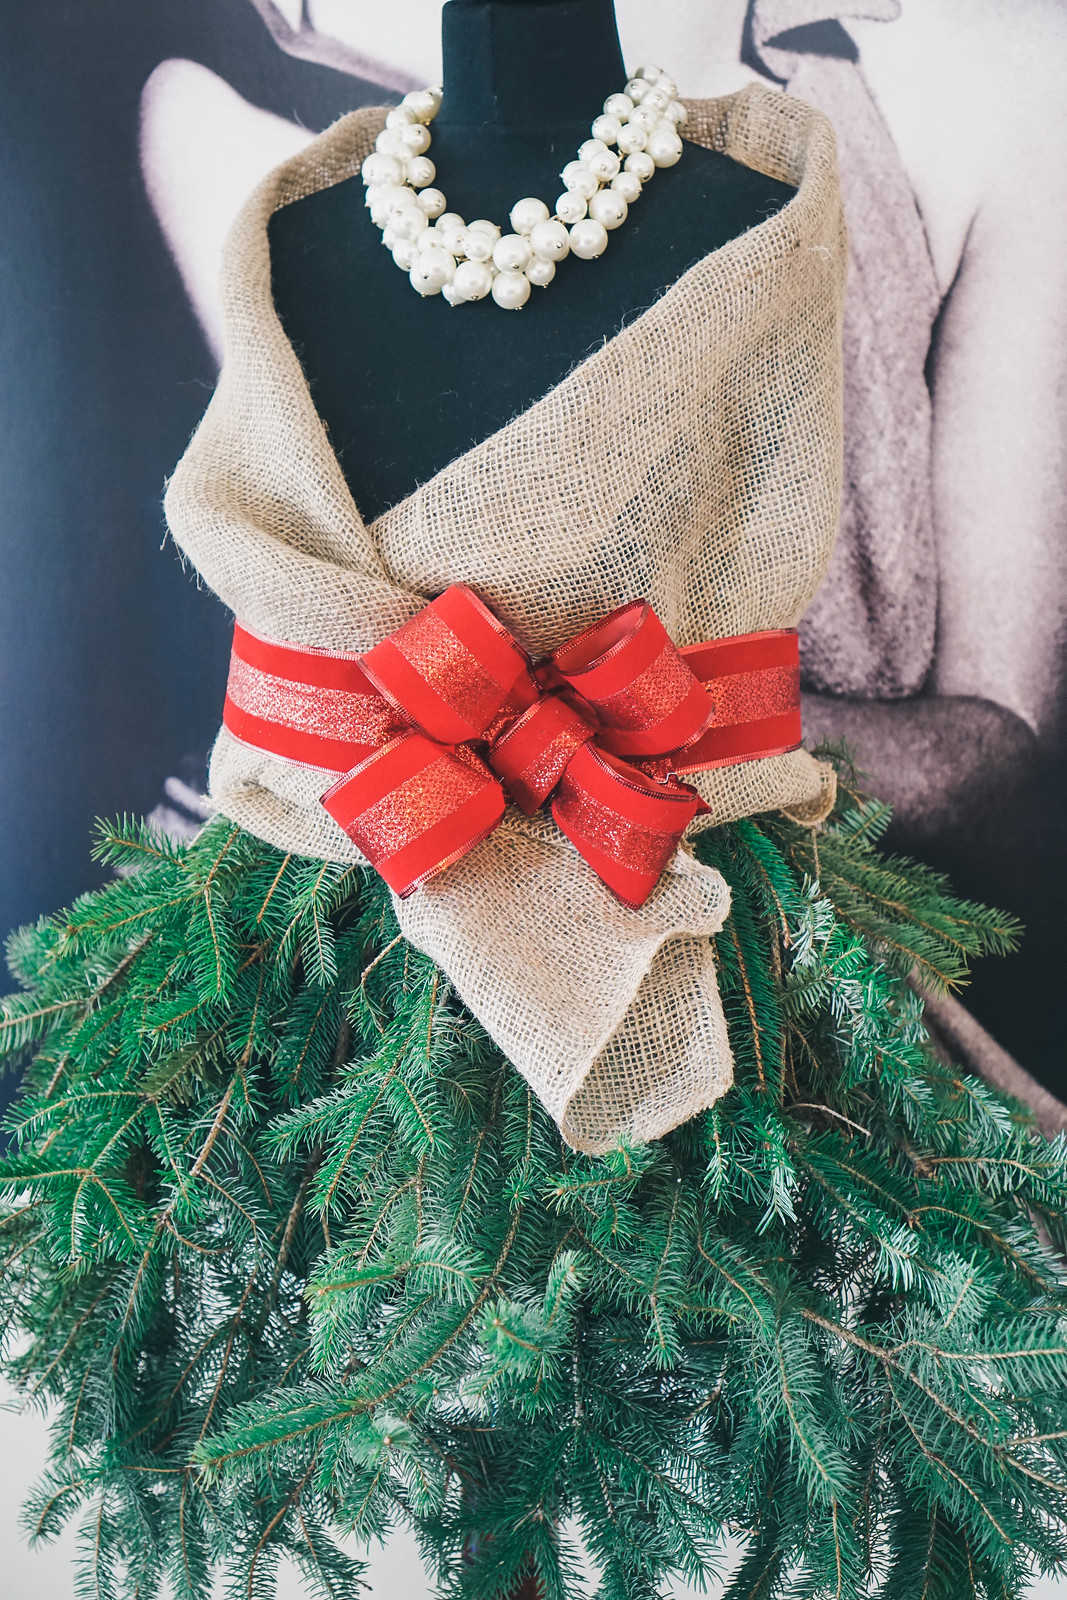 DIY Mannequin Christmas Tree | How to Make a Mannequin Christmas Tree | DIY Christmas Decorations | Christmas Decor | Holiday Decorations | Shabby Chic Christmas